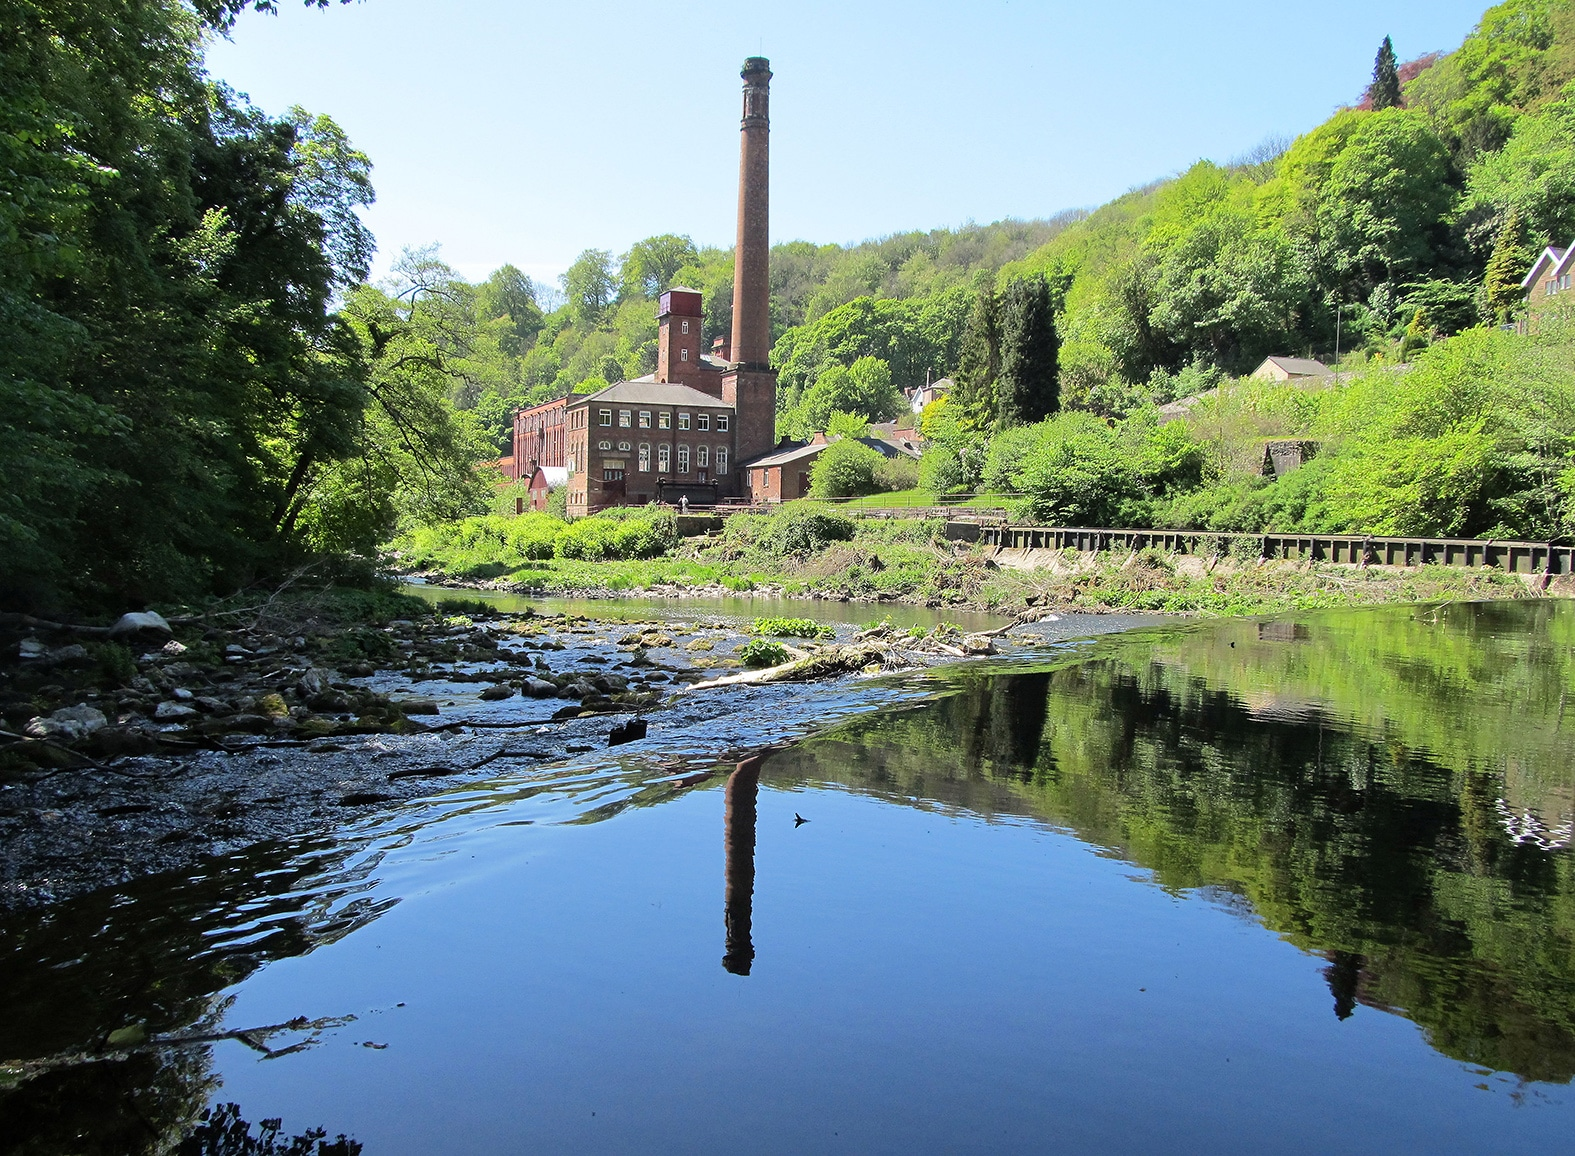 Masson Mills from the river